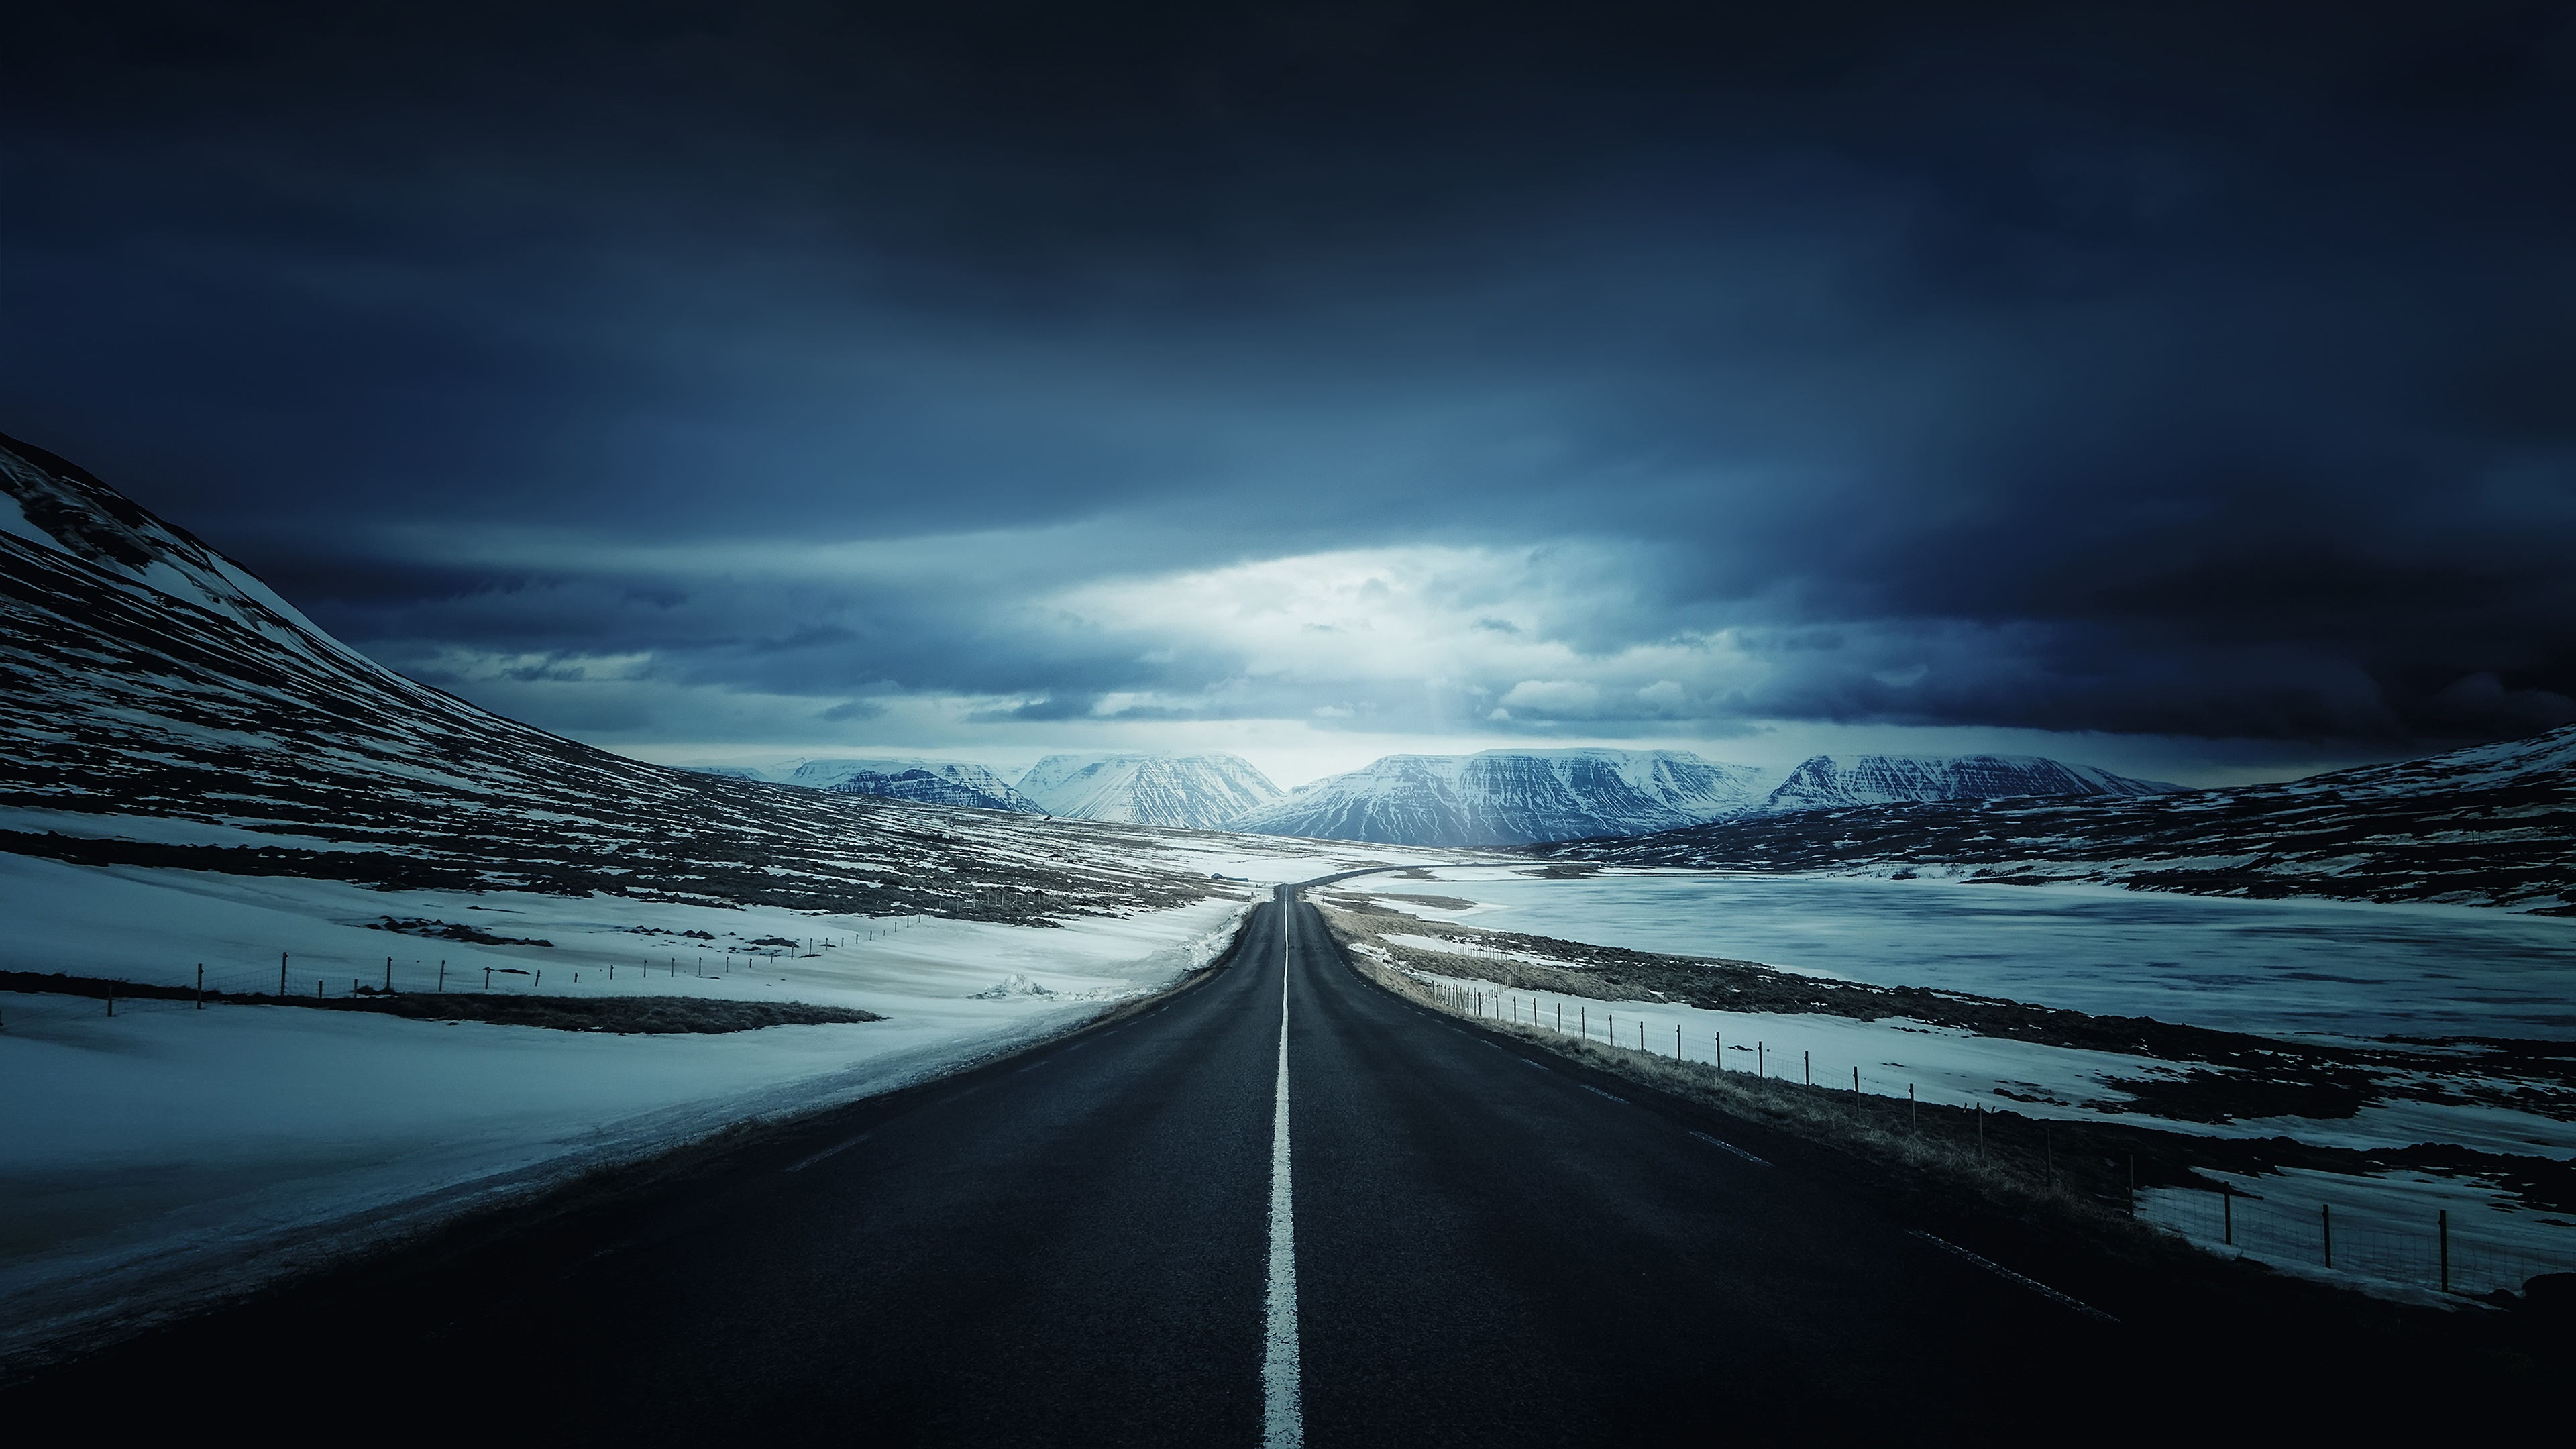 Icelands Ring Road Wallpapers HD Wallpapers 3840x2160